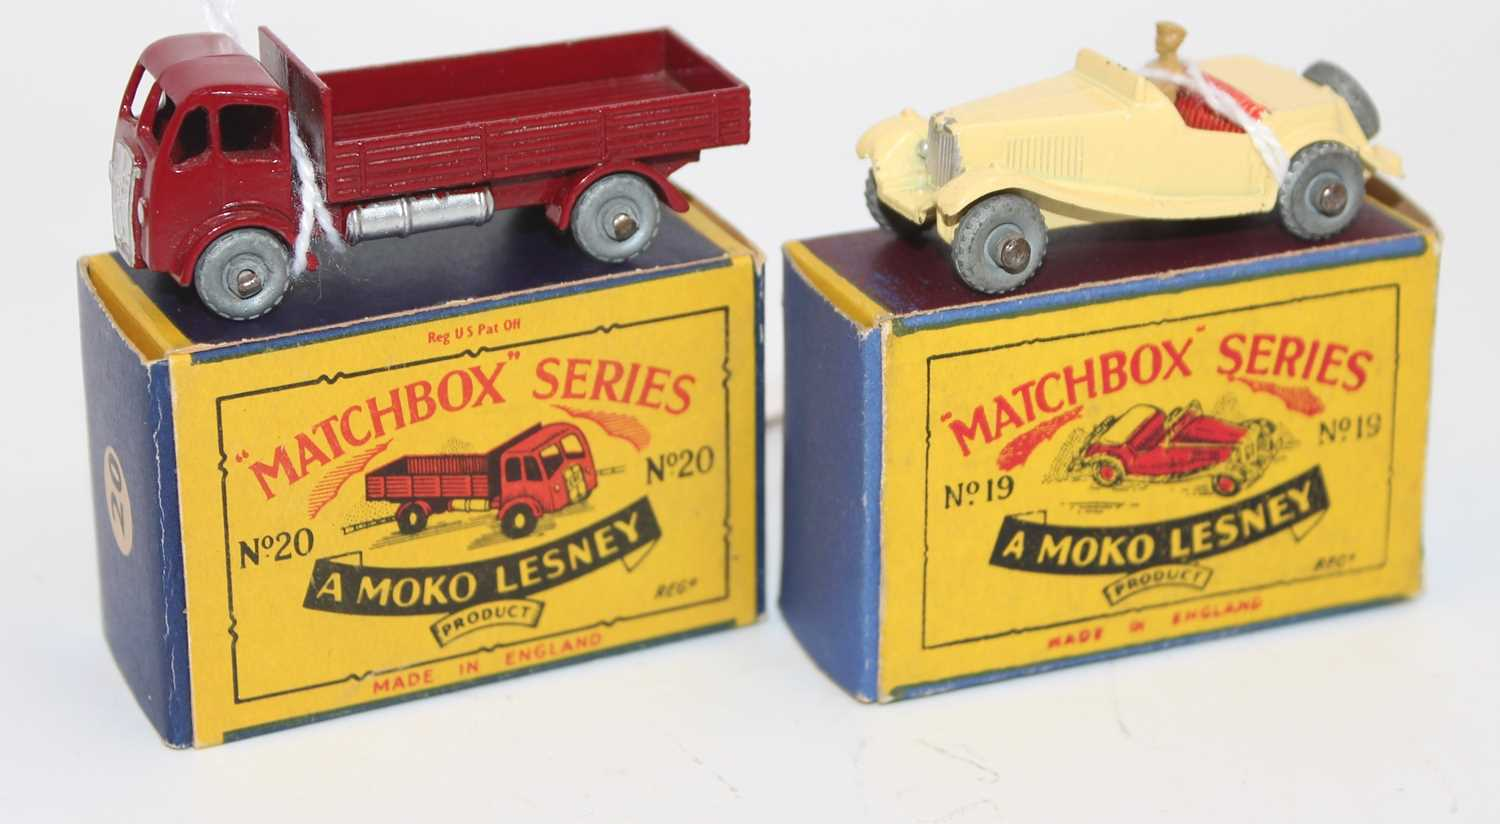 Matchbox group of 2 models as follows: Matchbox 19a MG TD. in cream with red seats, metal wheels and